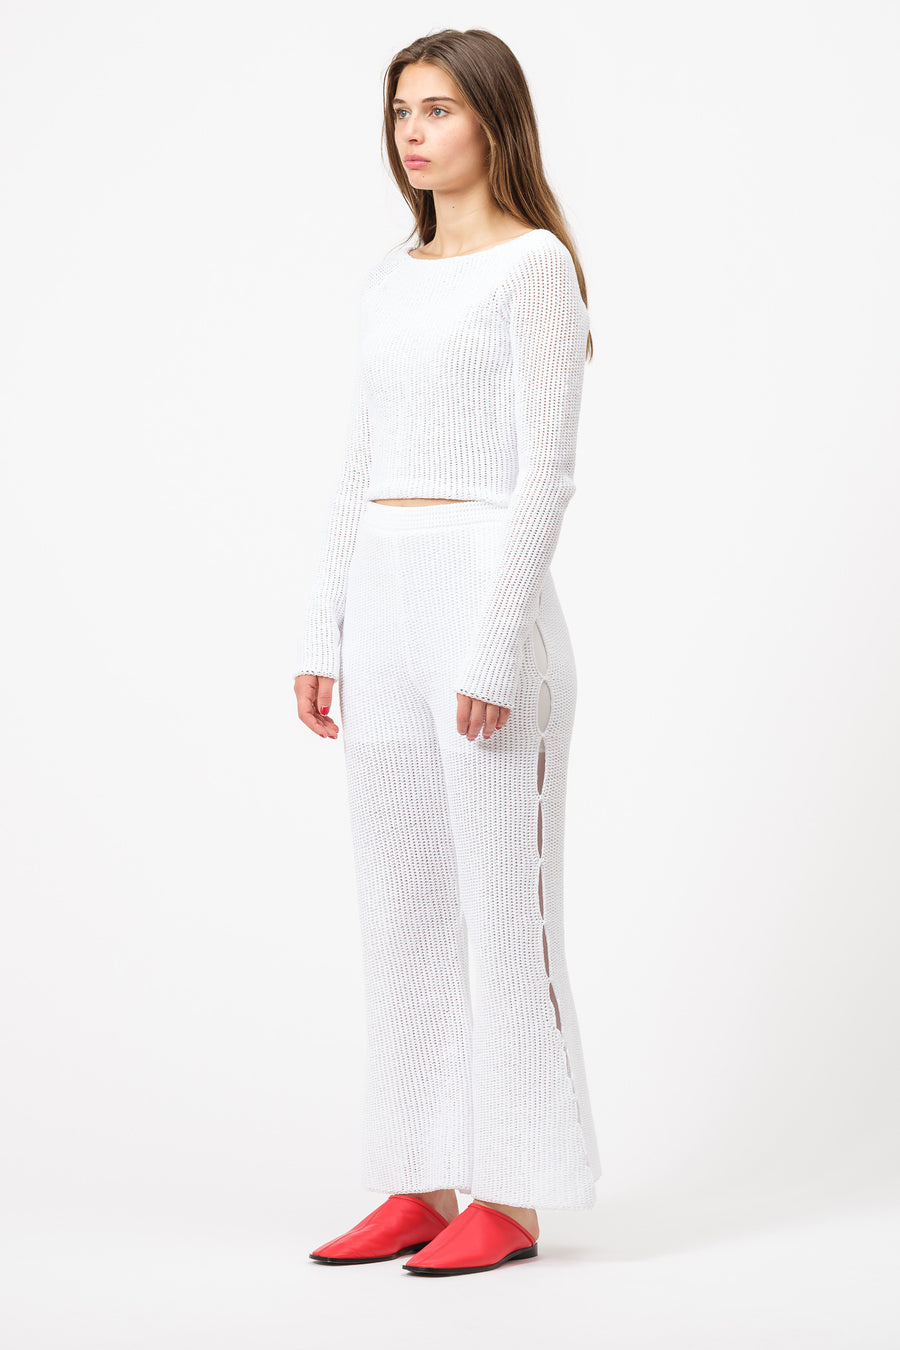 Eckhaus Latta Vining Apron Sweater in Paper Mache White - Notre